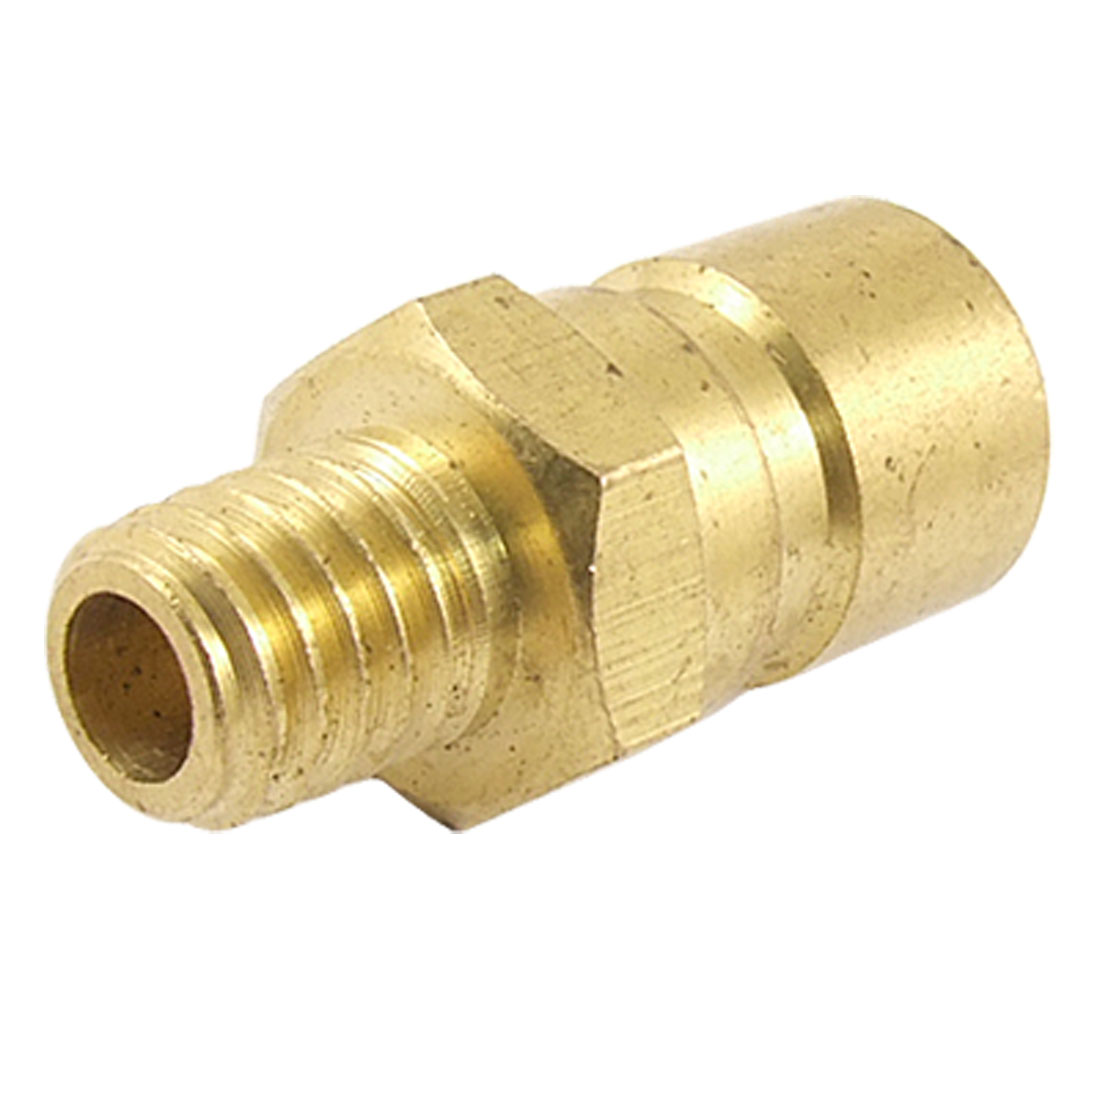 "1 1/5"" Brass Straight Mold Coupler Quick Coupling Male Nipple 9/25"" Coarse Thread"